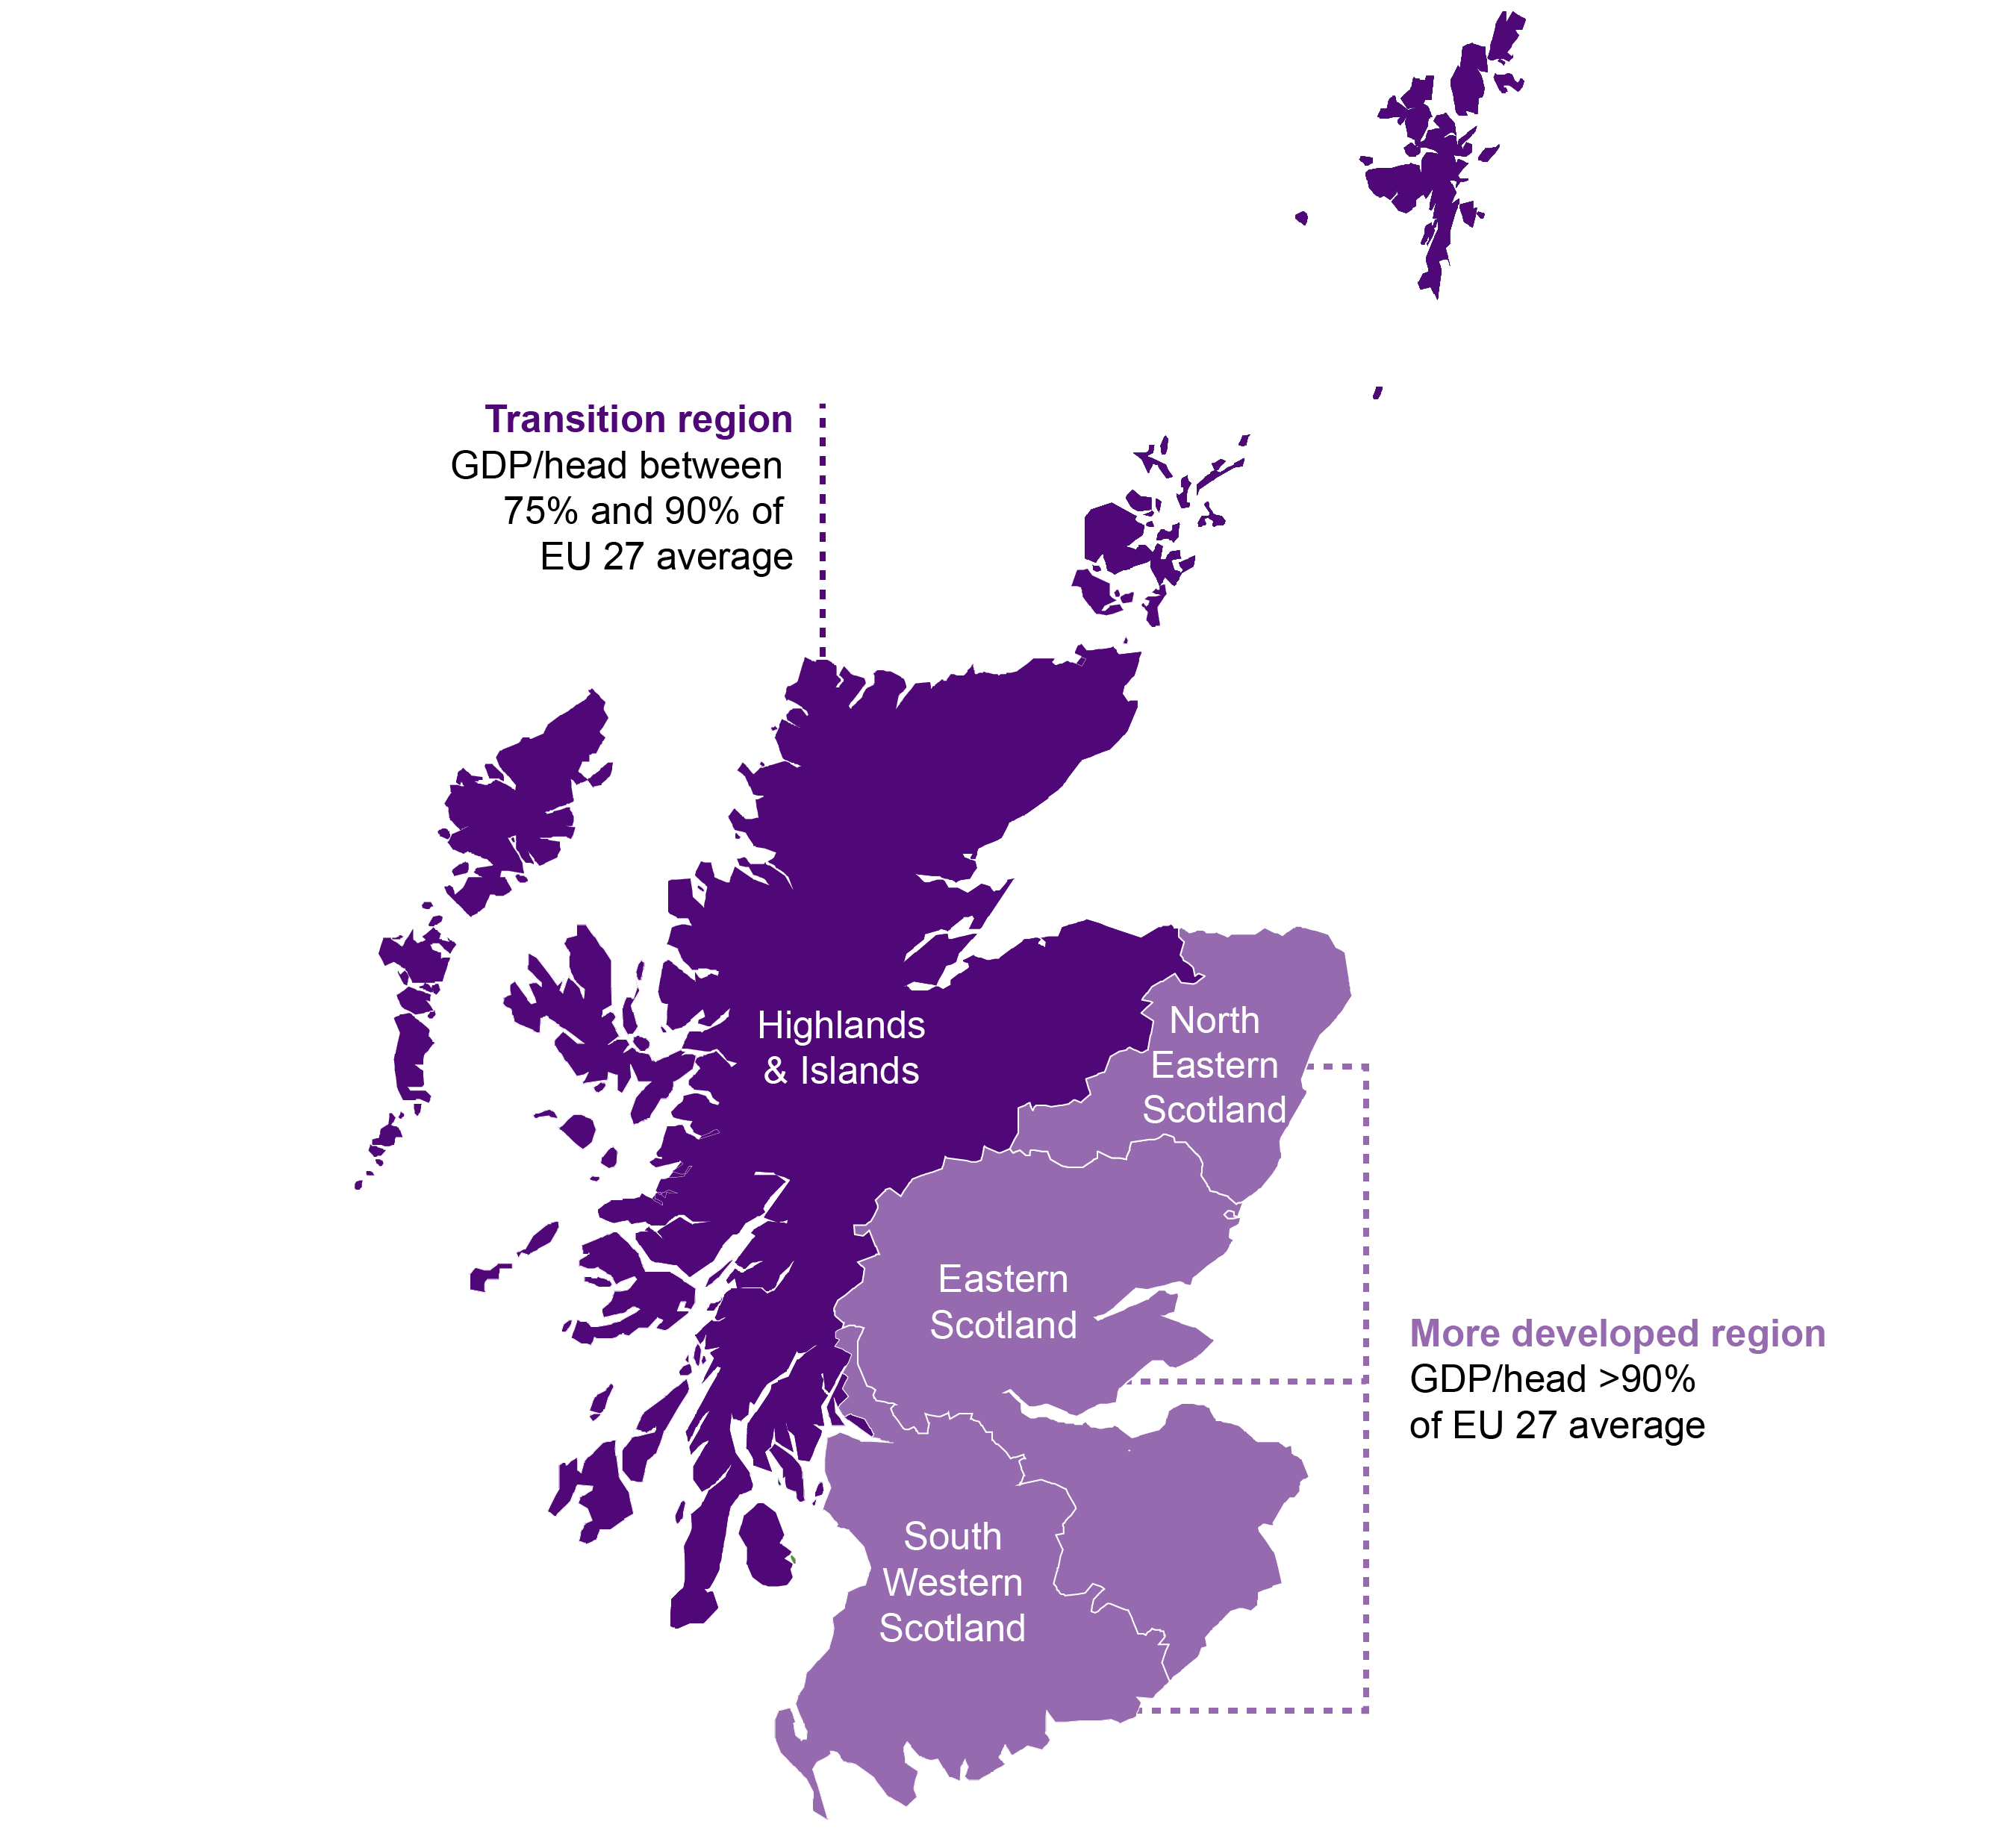 Map of Scotland showing NUTS2 regions for structural funding purposes